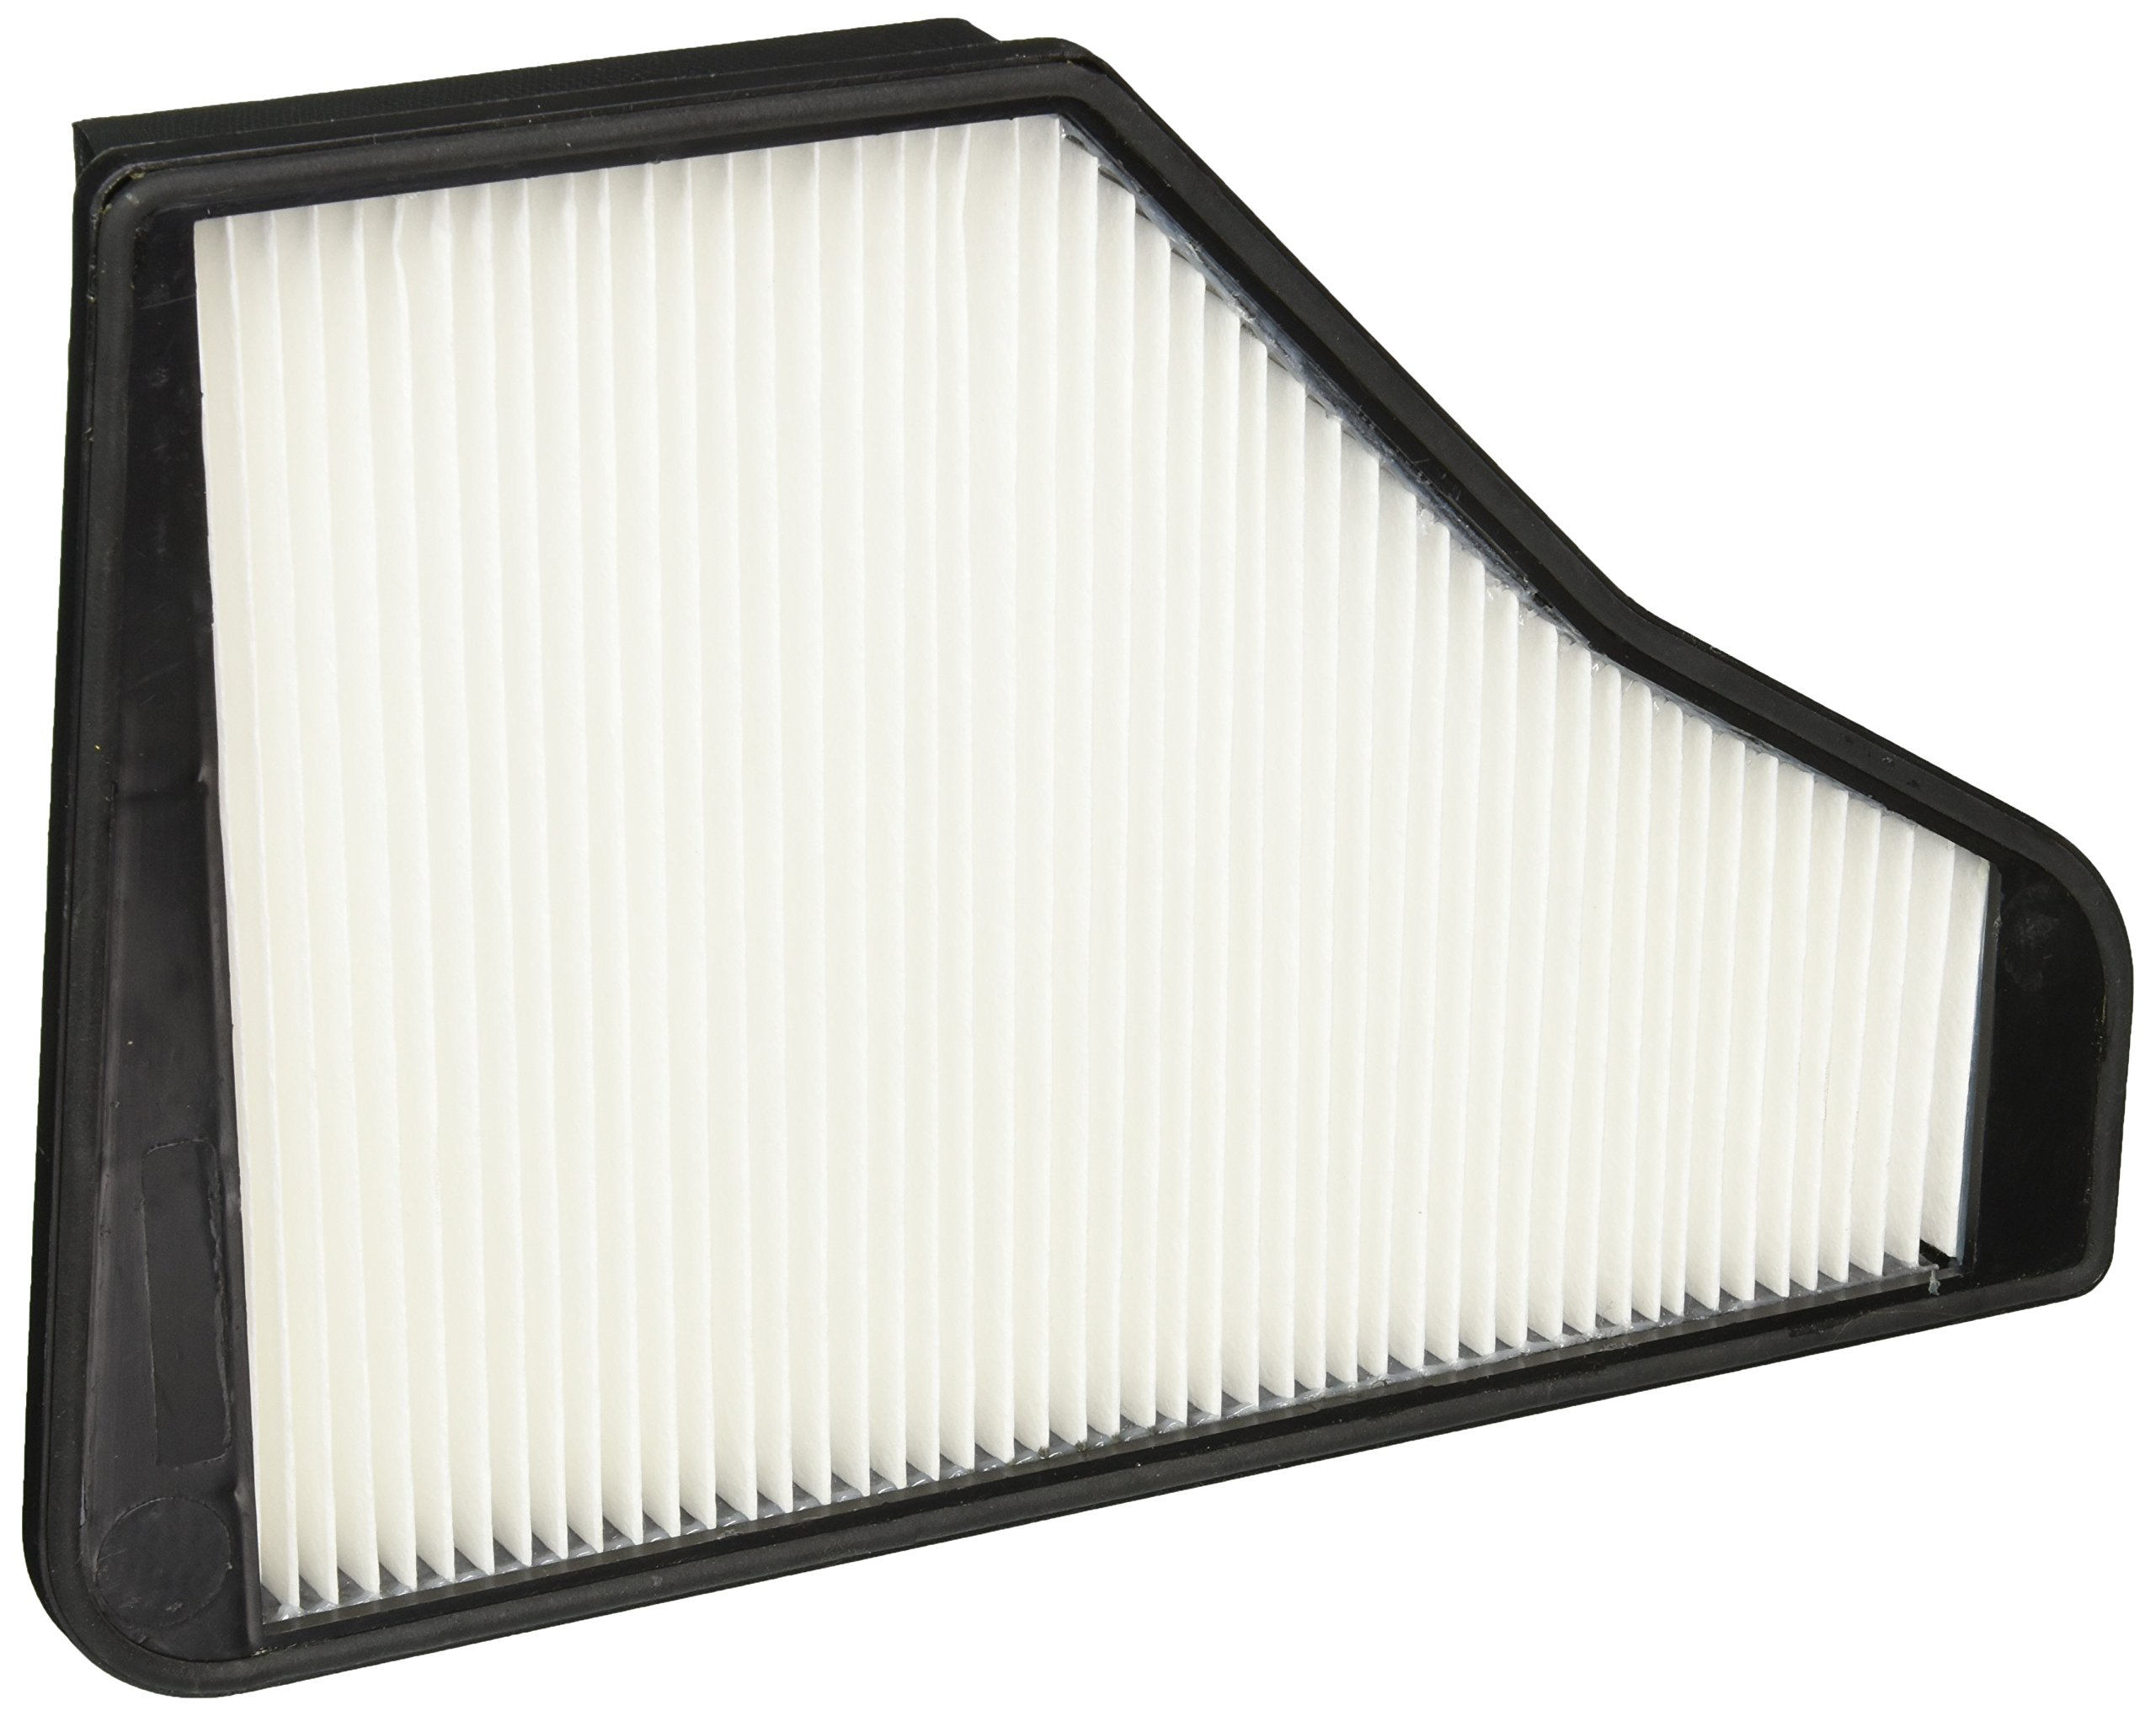 Bosch P3874WS / F00E369800 Workshop Cabin Air Filter For Select Mercedes-Benz CL500, CL600, S320, S350, S420, S500, S600, 300SD, 300SE, 400SE, 500SEL, 600SEL by Bosch Automotive (Image #1)